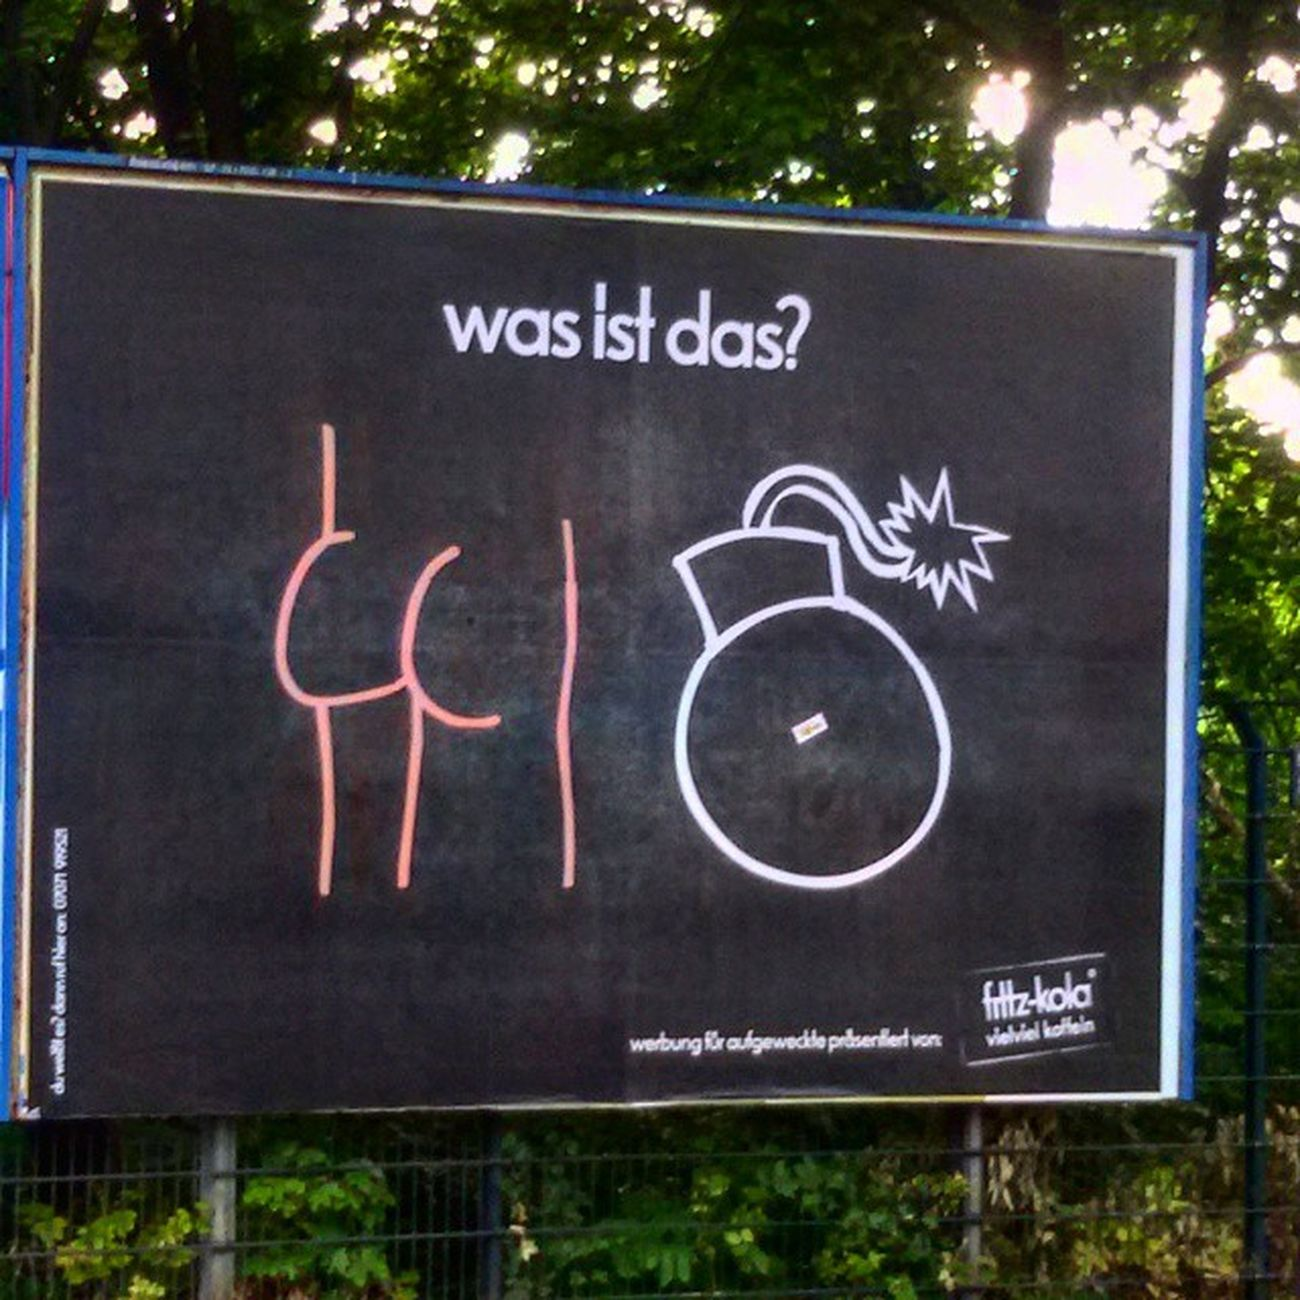 Berlin Street Advertising Wasistdas